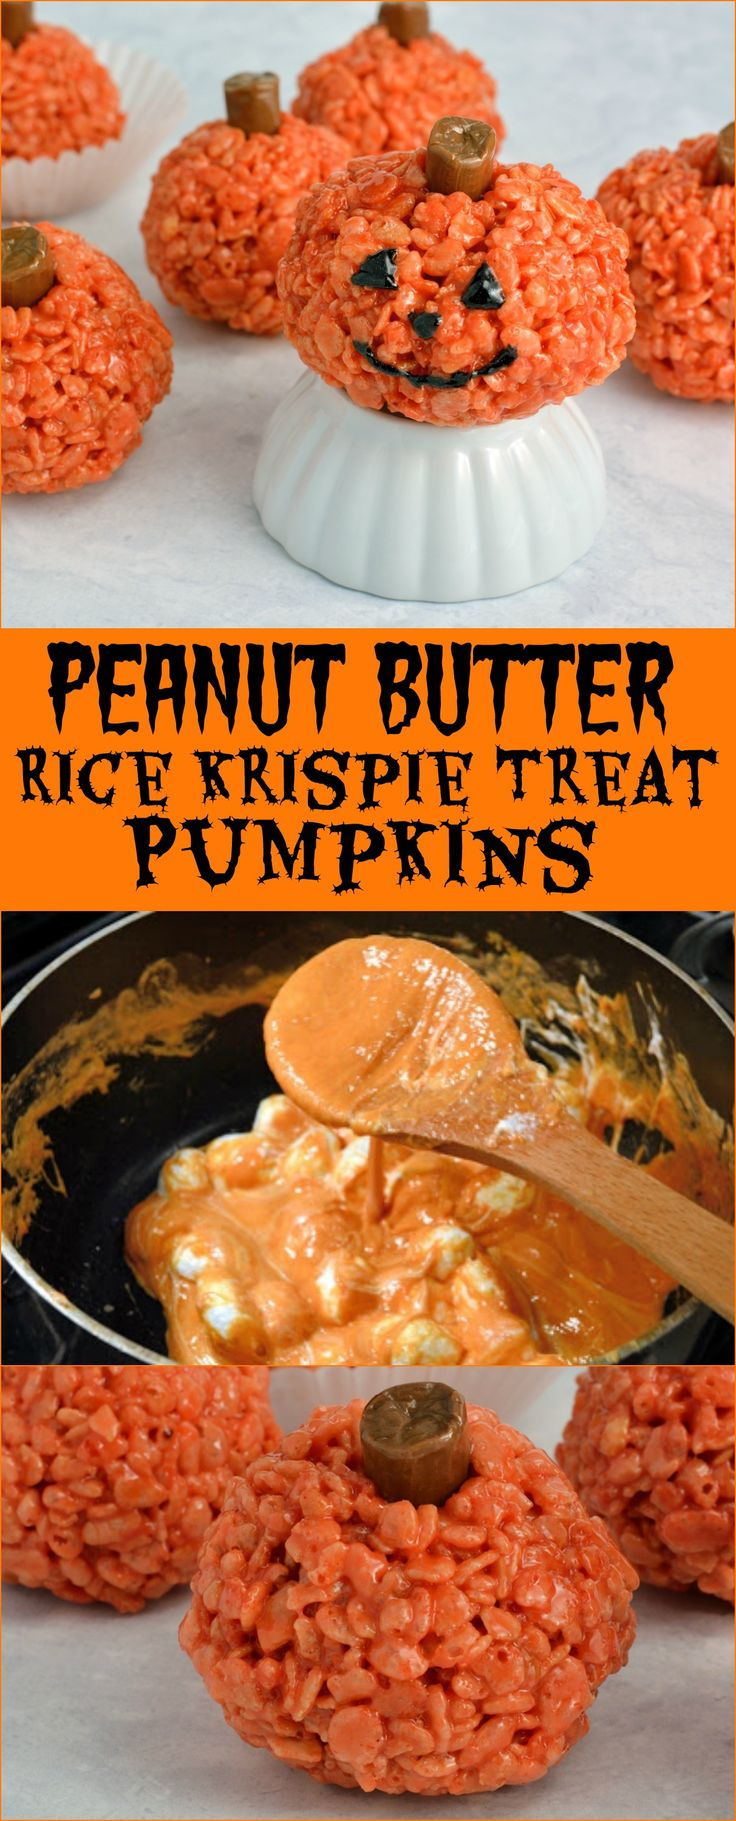 Peanut Butter Rice Krispie Treat Pumpkin Recipe is perfect for any fall…